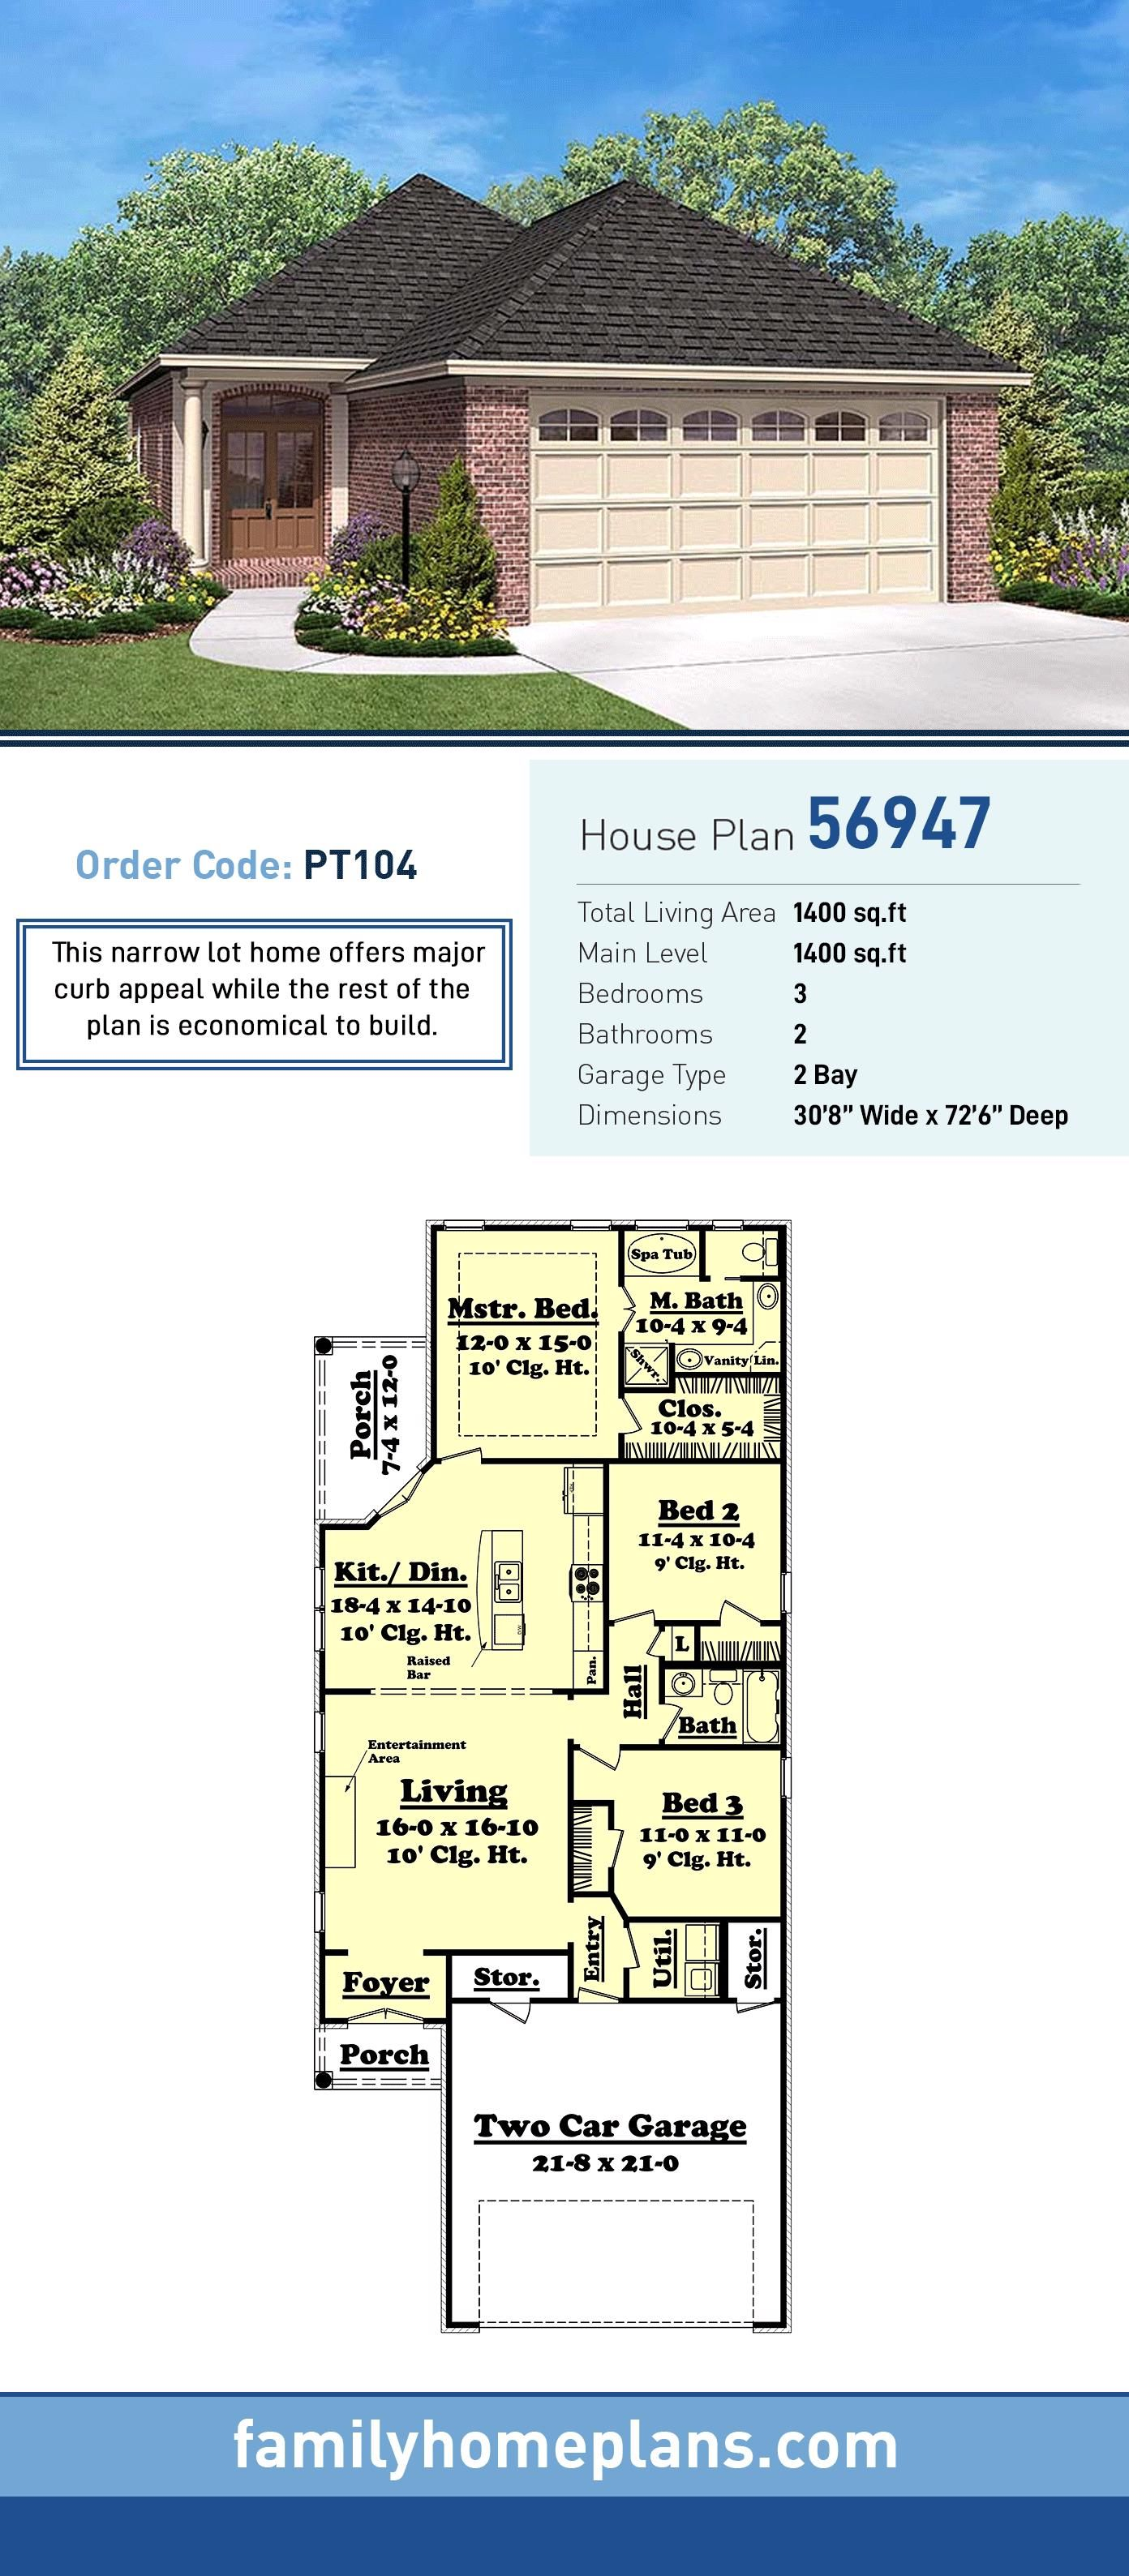 Narrow Lot House Plan 56947 Total Living Area 1400 Sq Ft 3 Bedrooms And 2 Bathrooms This Narrow Lot House Plans Country Style House Plans Narrow Lot House